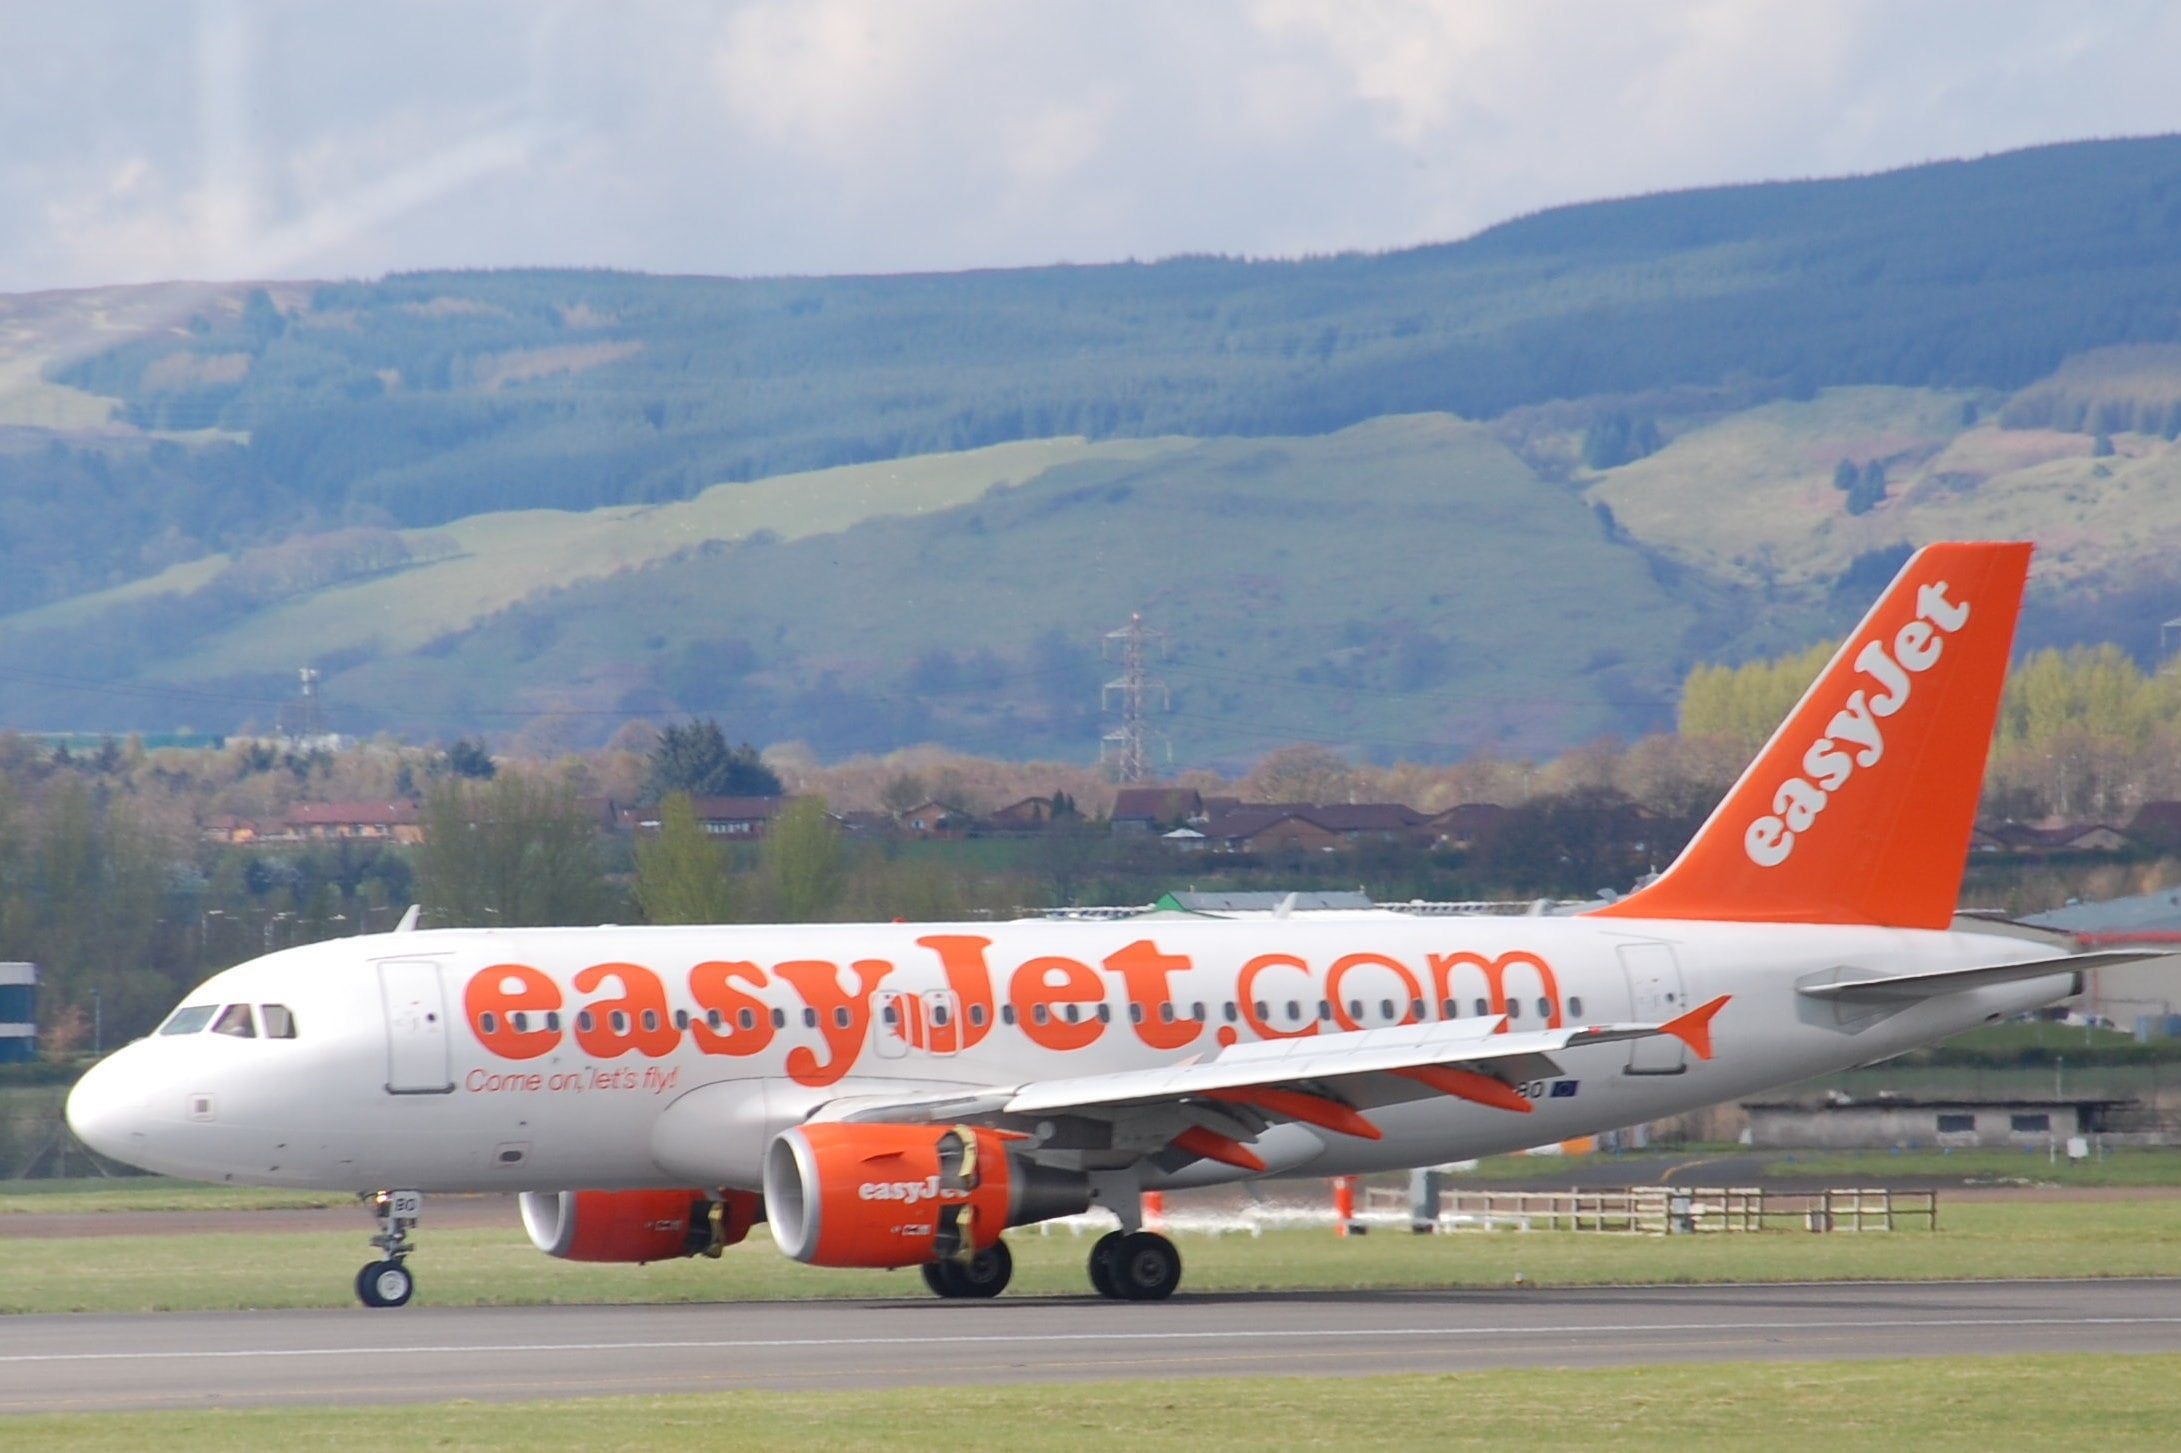 aeeo easyjet check in online edreams blog di viaggi